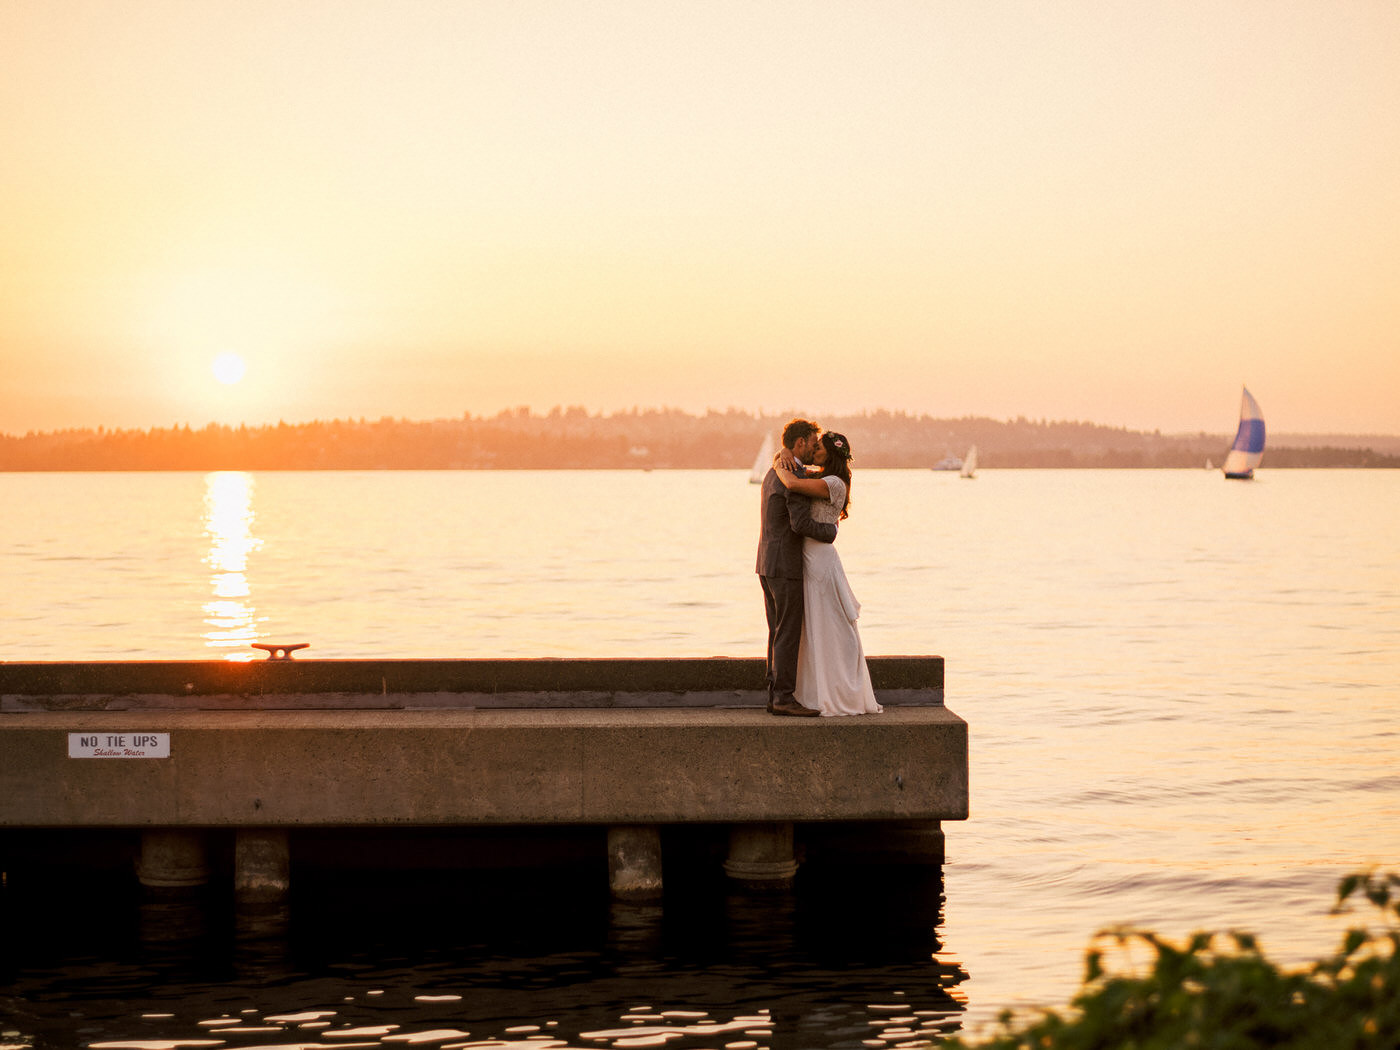 340-pacific-northwest-wedding-photography-by-ryan-flynn.jpg